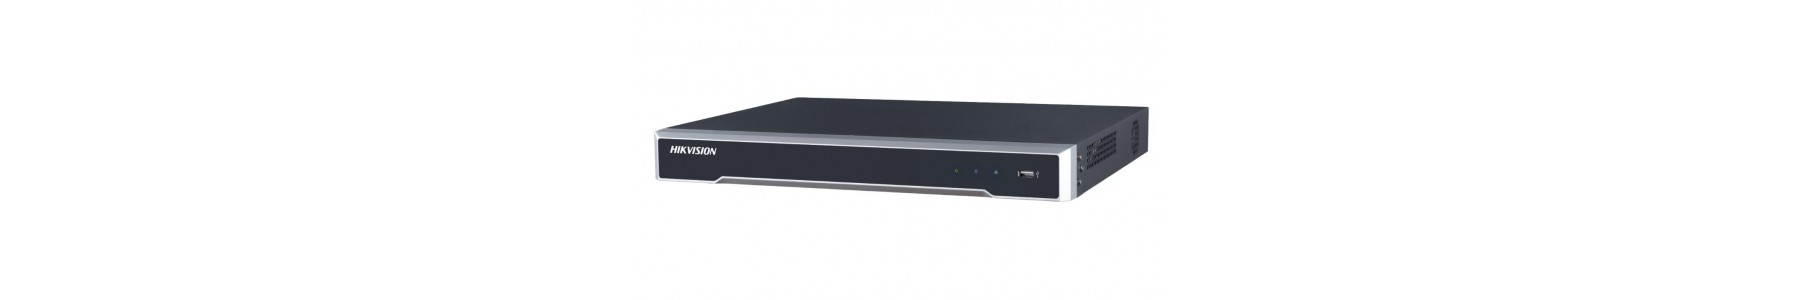 NVR SERIE 7600 I (HDD Incluso)